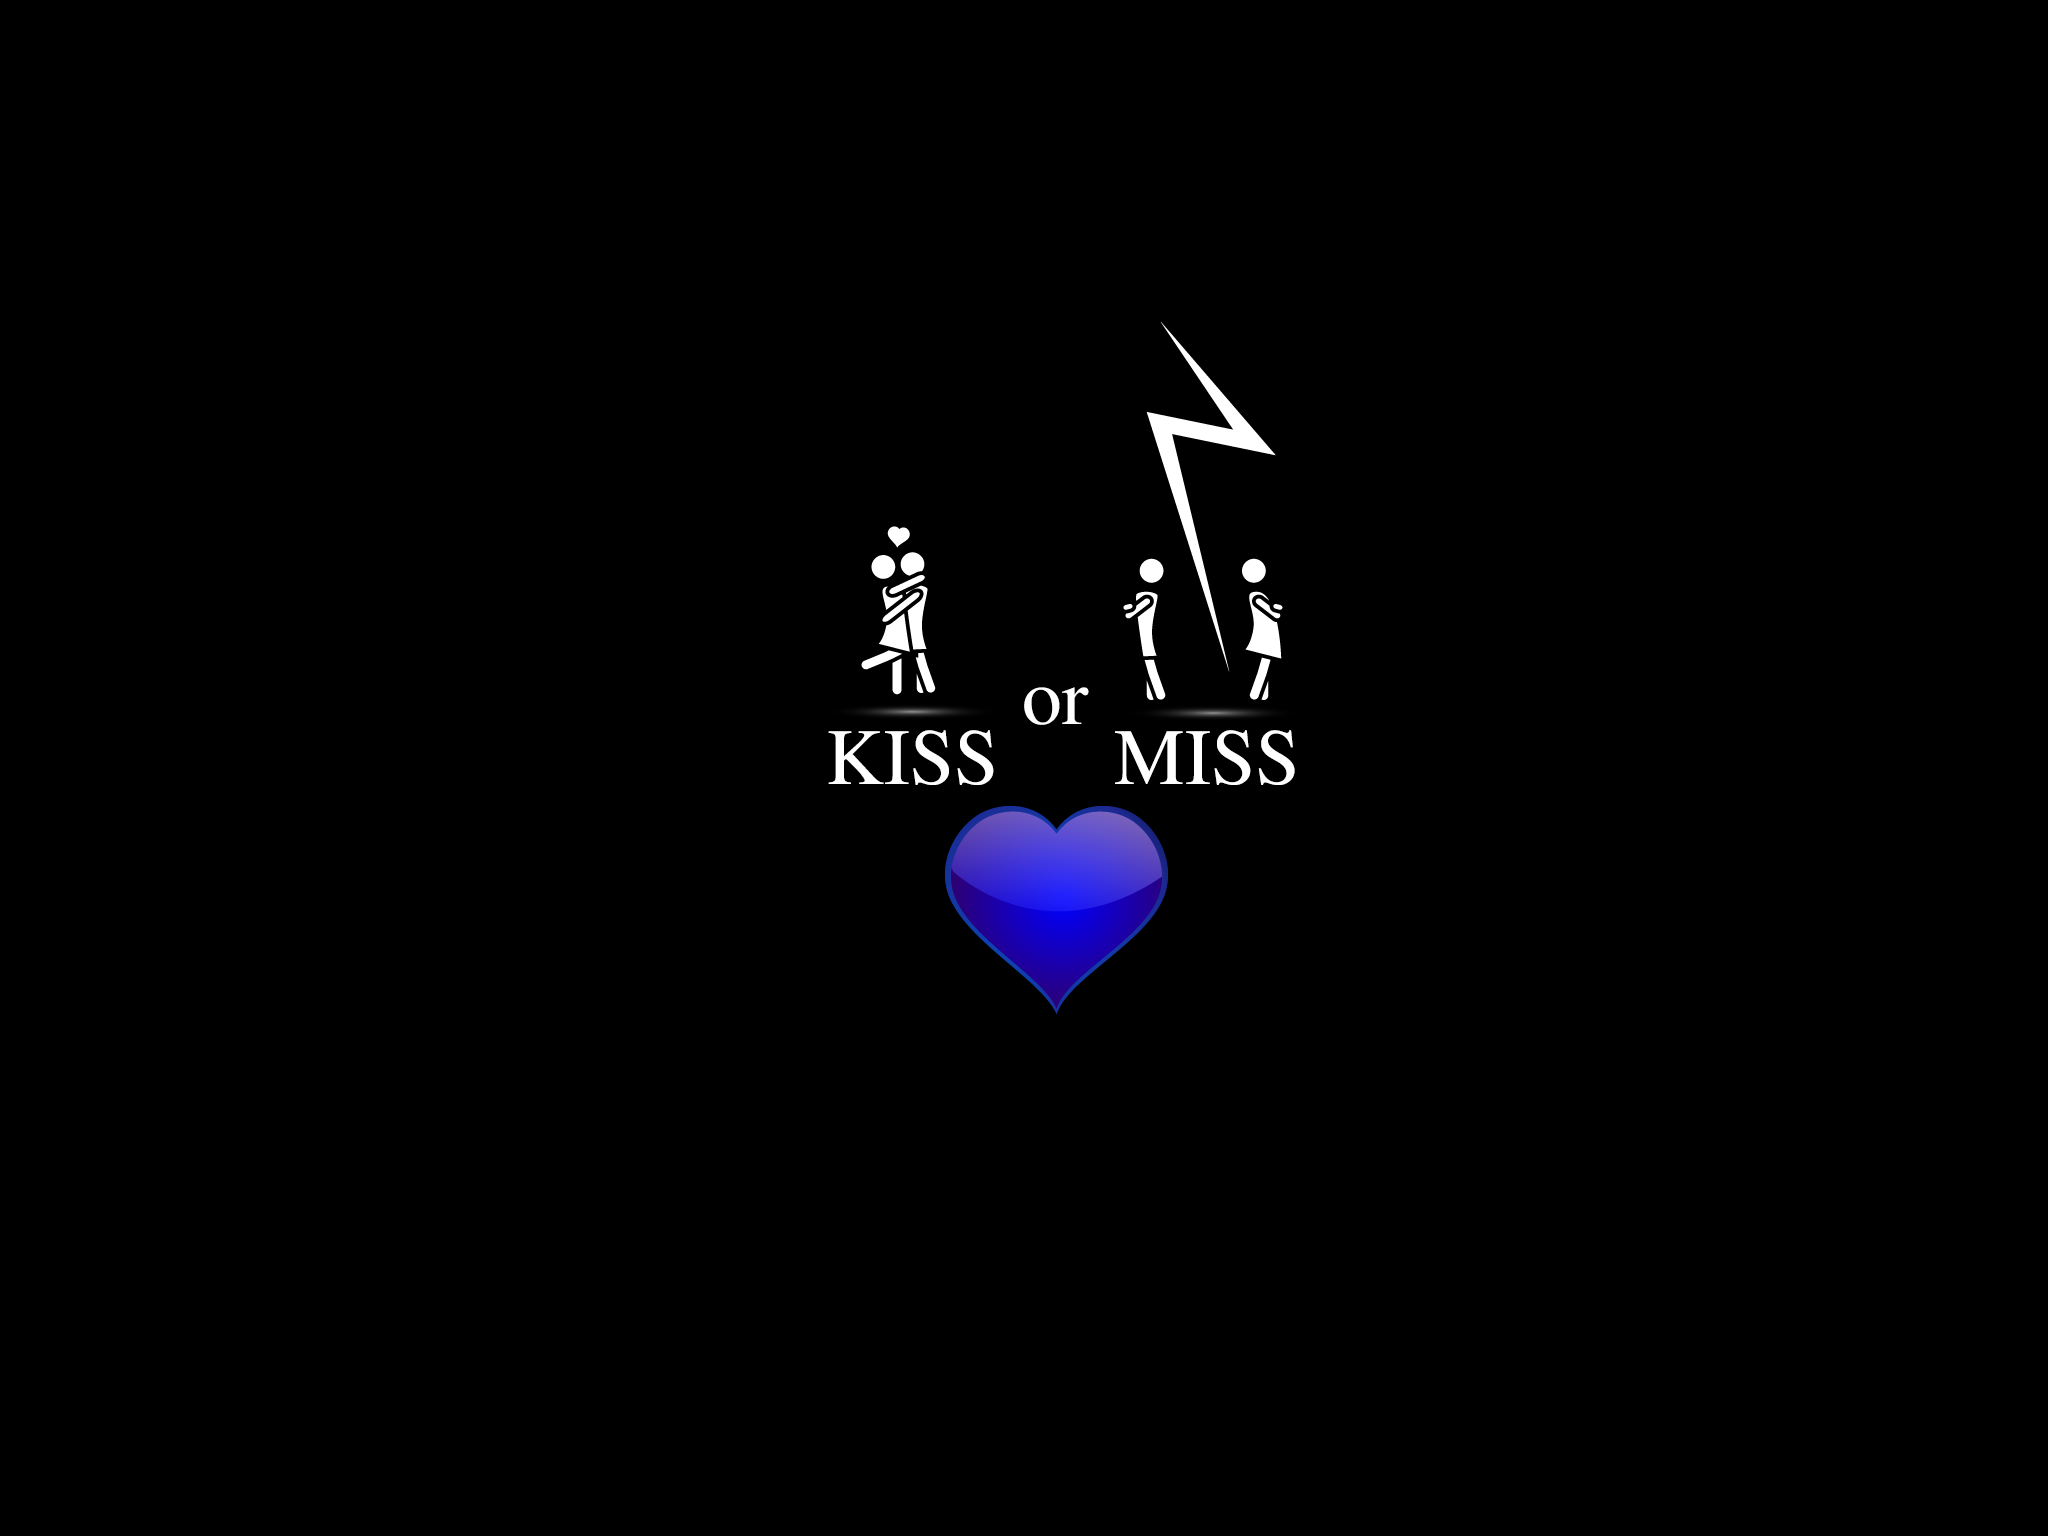 Kiss or Miss